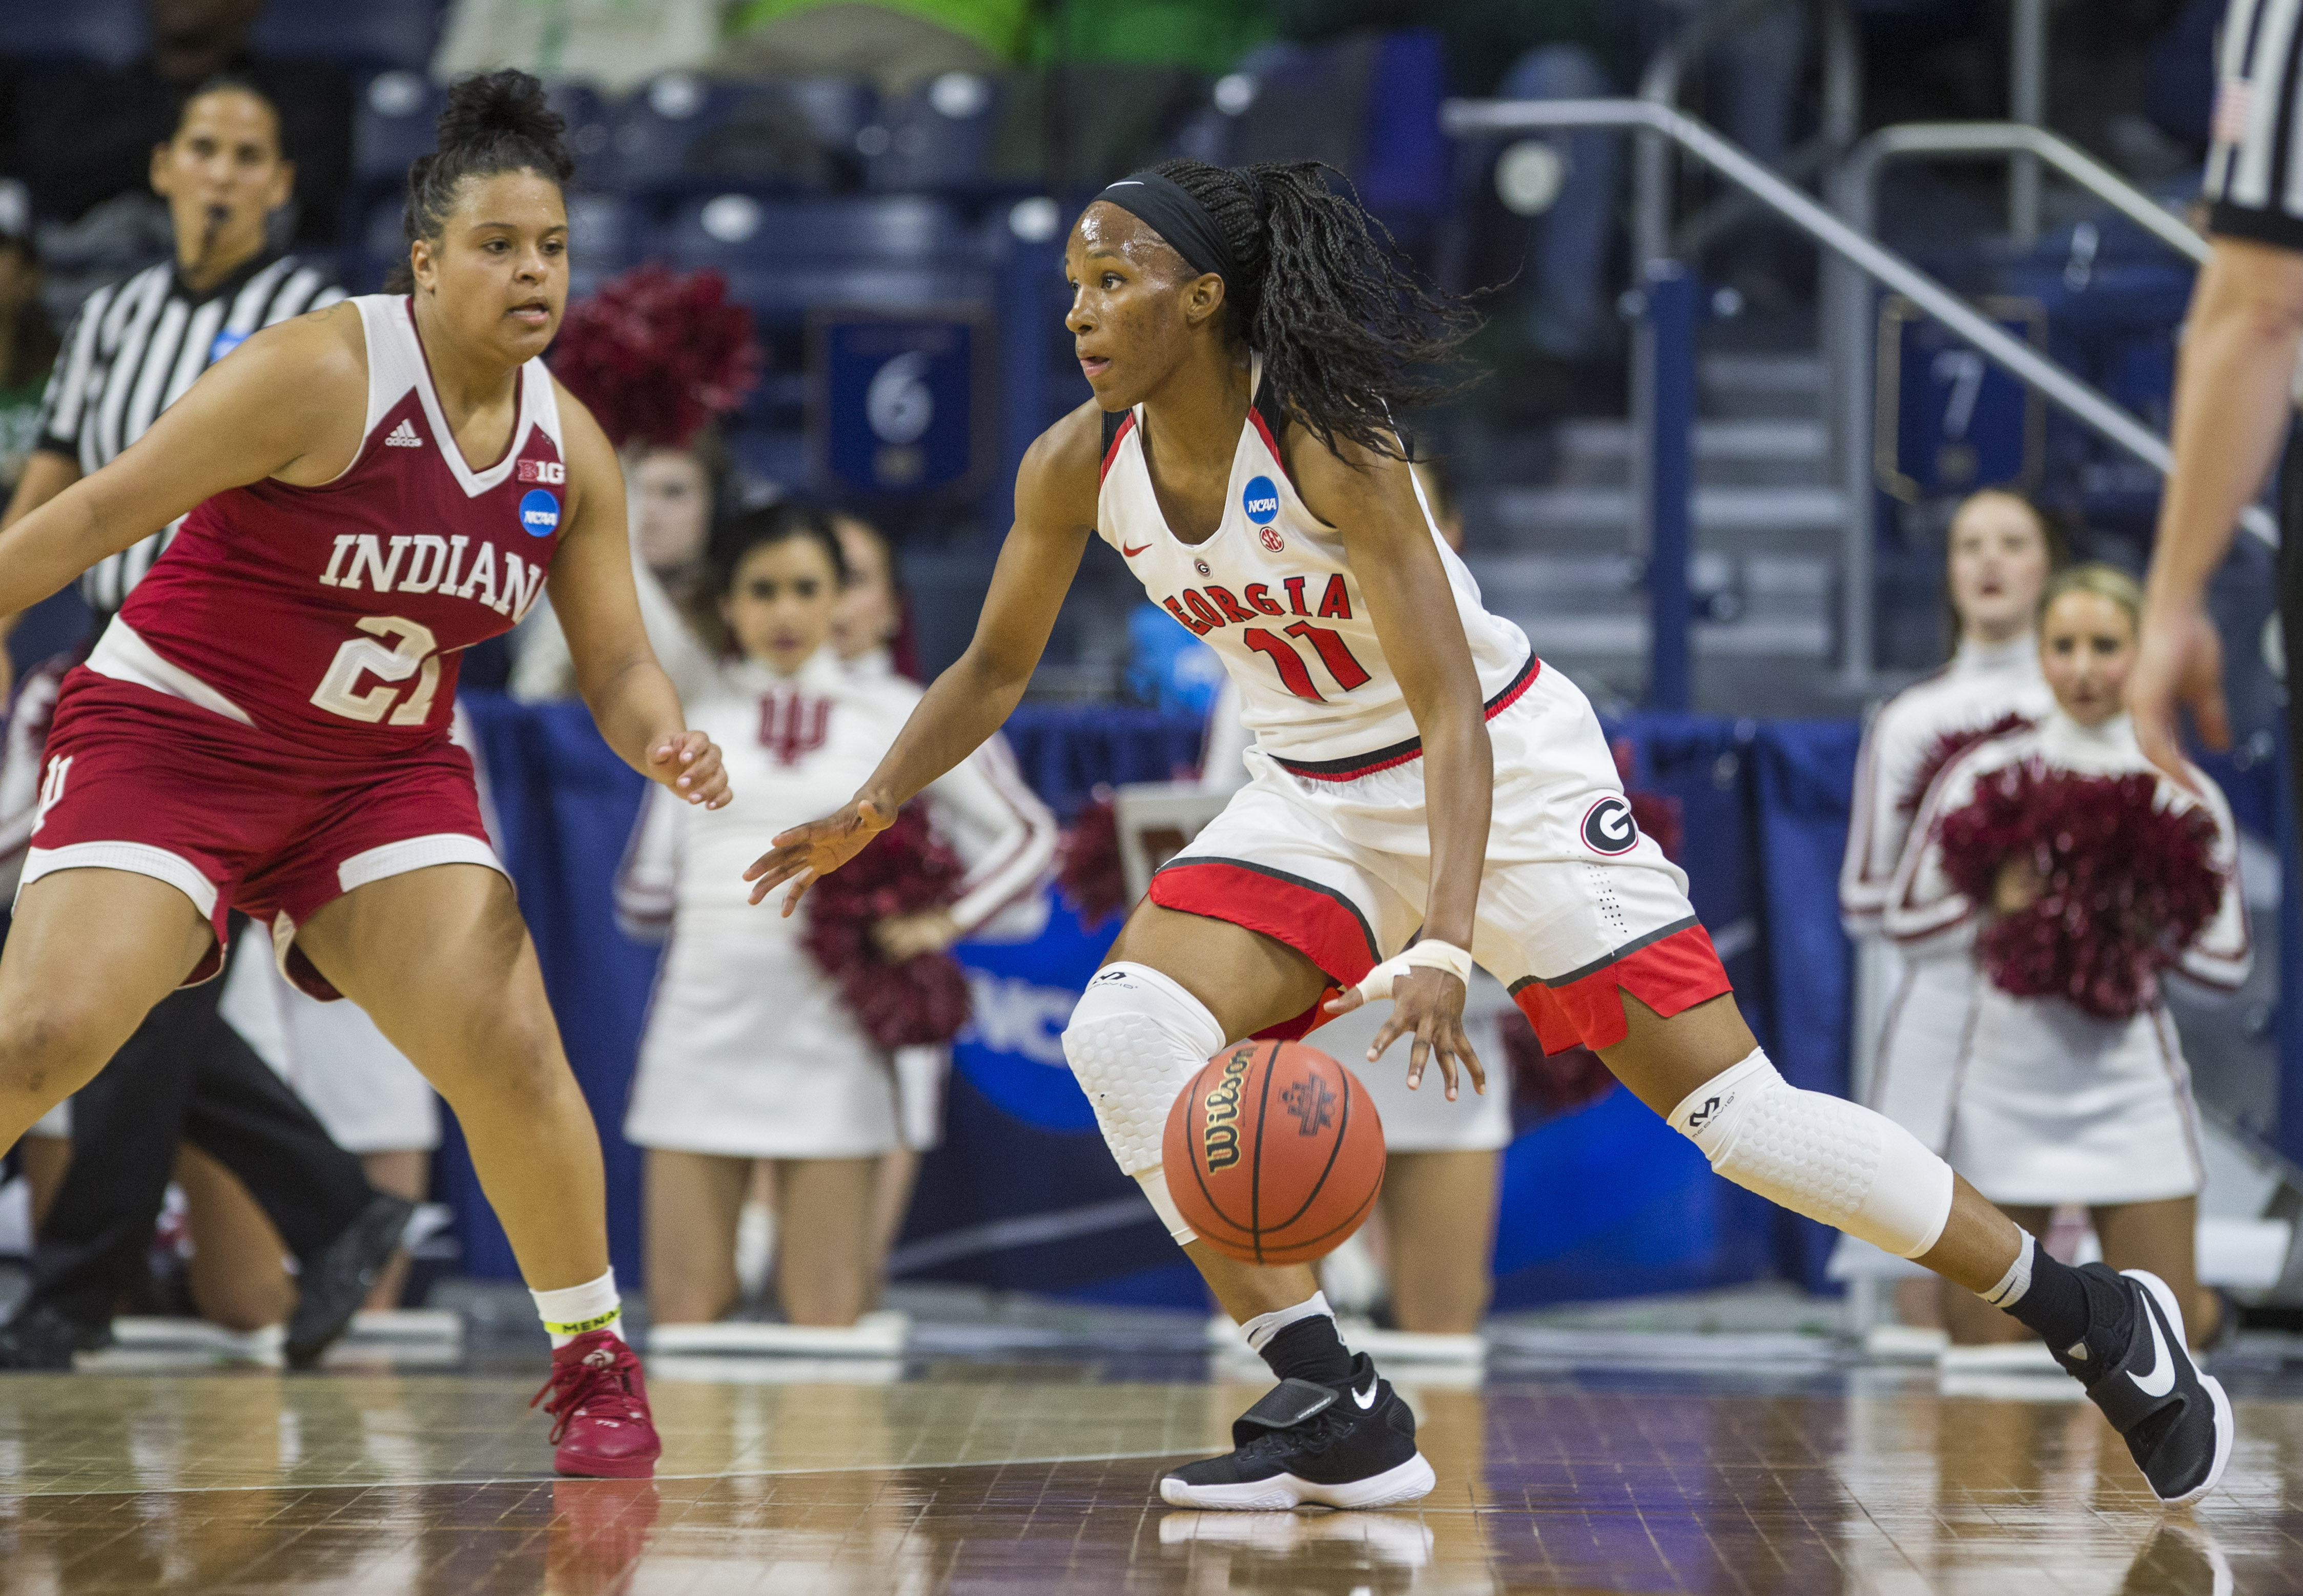 Georgias Pachis Roberts (11) drives around Indianas KarleeMcBride (21) during the first half of a first-round women's college basketball game in the NCAA Tournament, Saturday, March 19, 2016, in South Bend, Ind. (AP Photo/Robert Franklin)